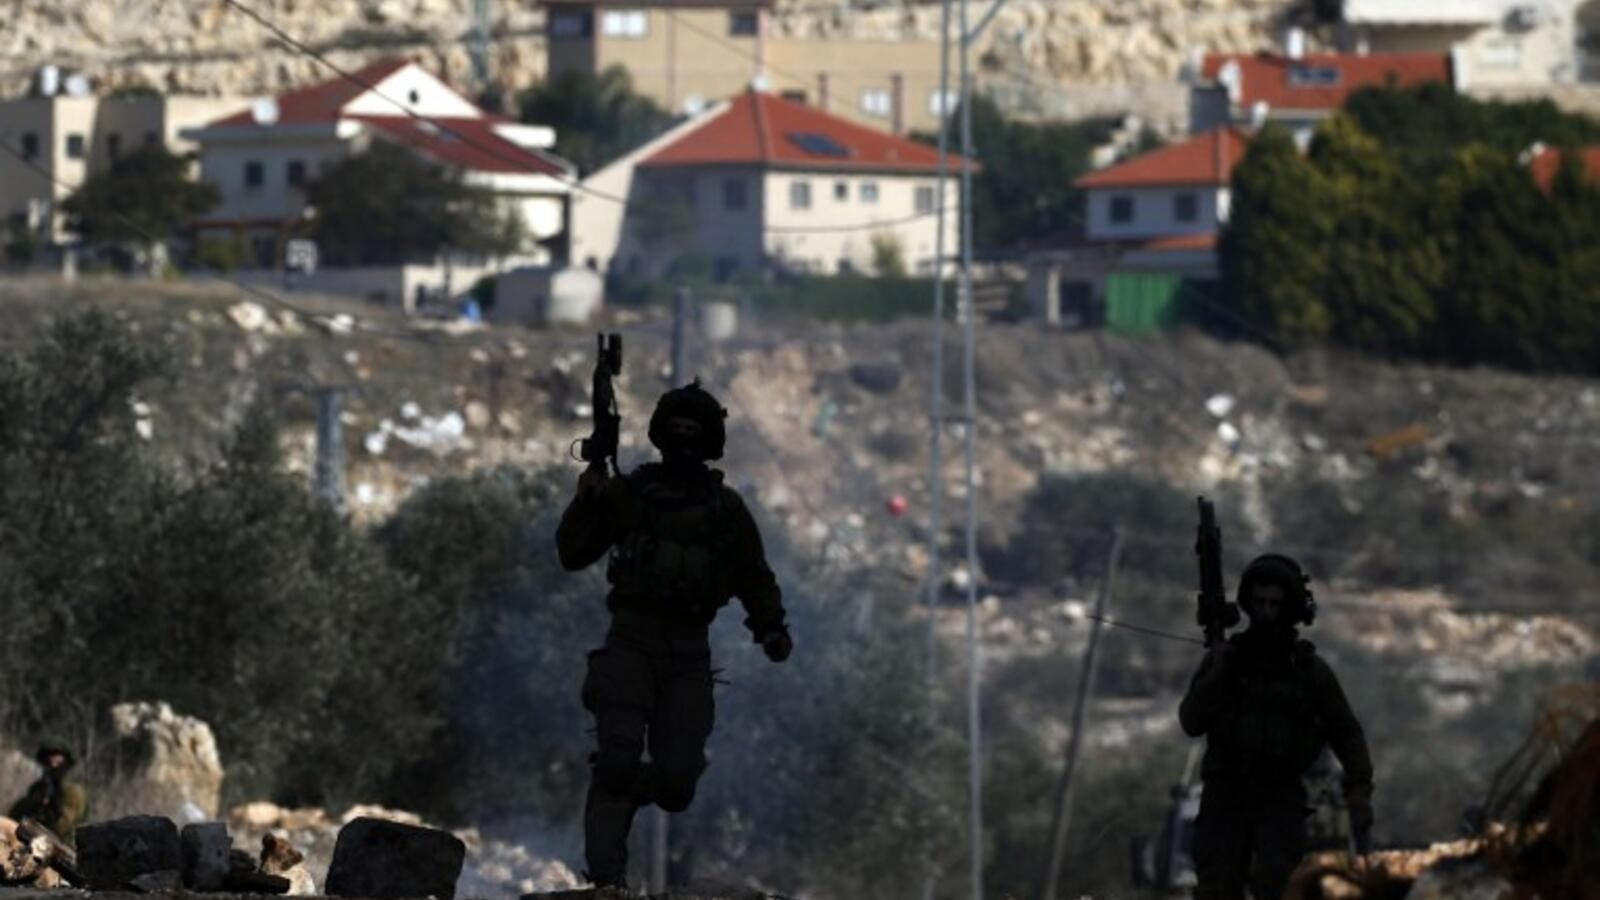 Israeli security forces take position near the settlement of Kadumim during clashes following a demonstration against the expropriation of Palestinian land by Israel in the village of Kfar Qaddum, in the occupied West Bank, on December 23, 2016. (AFP/Jaafar Ashtiyeh)